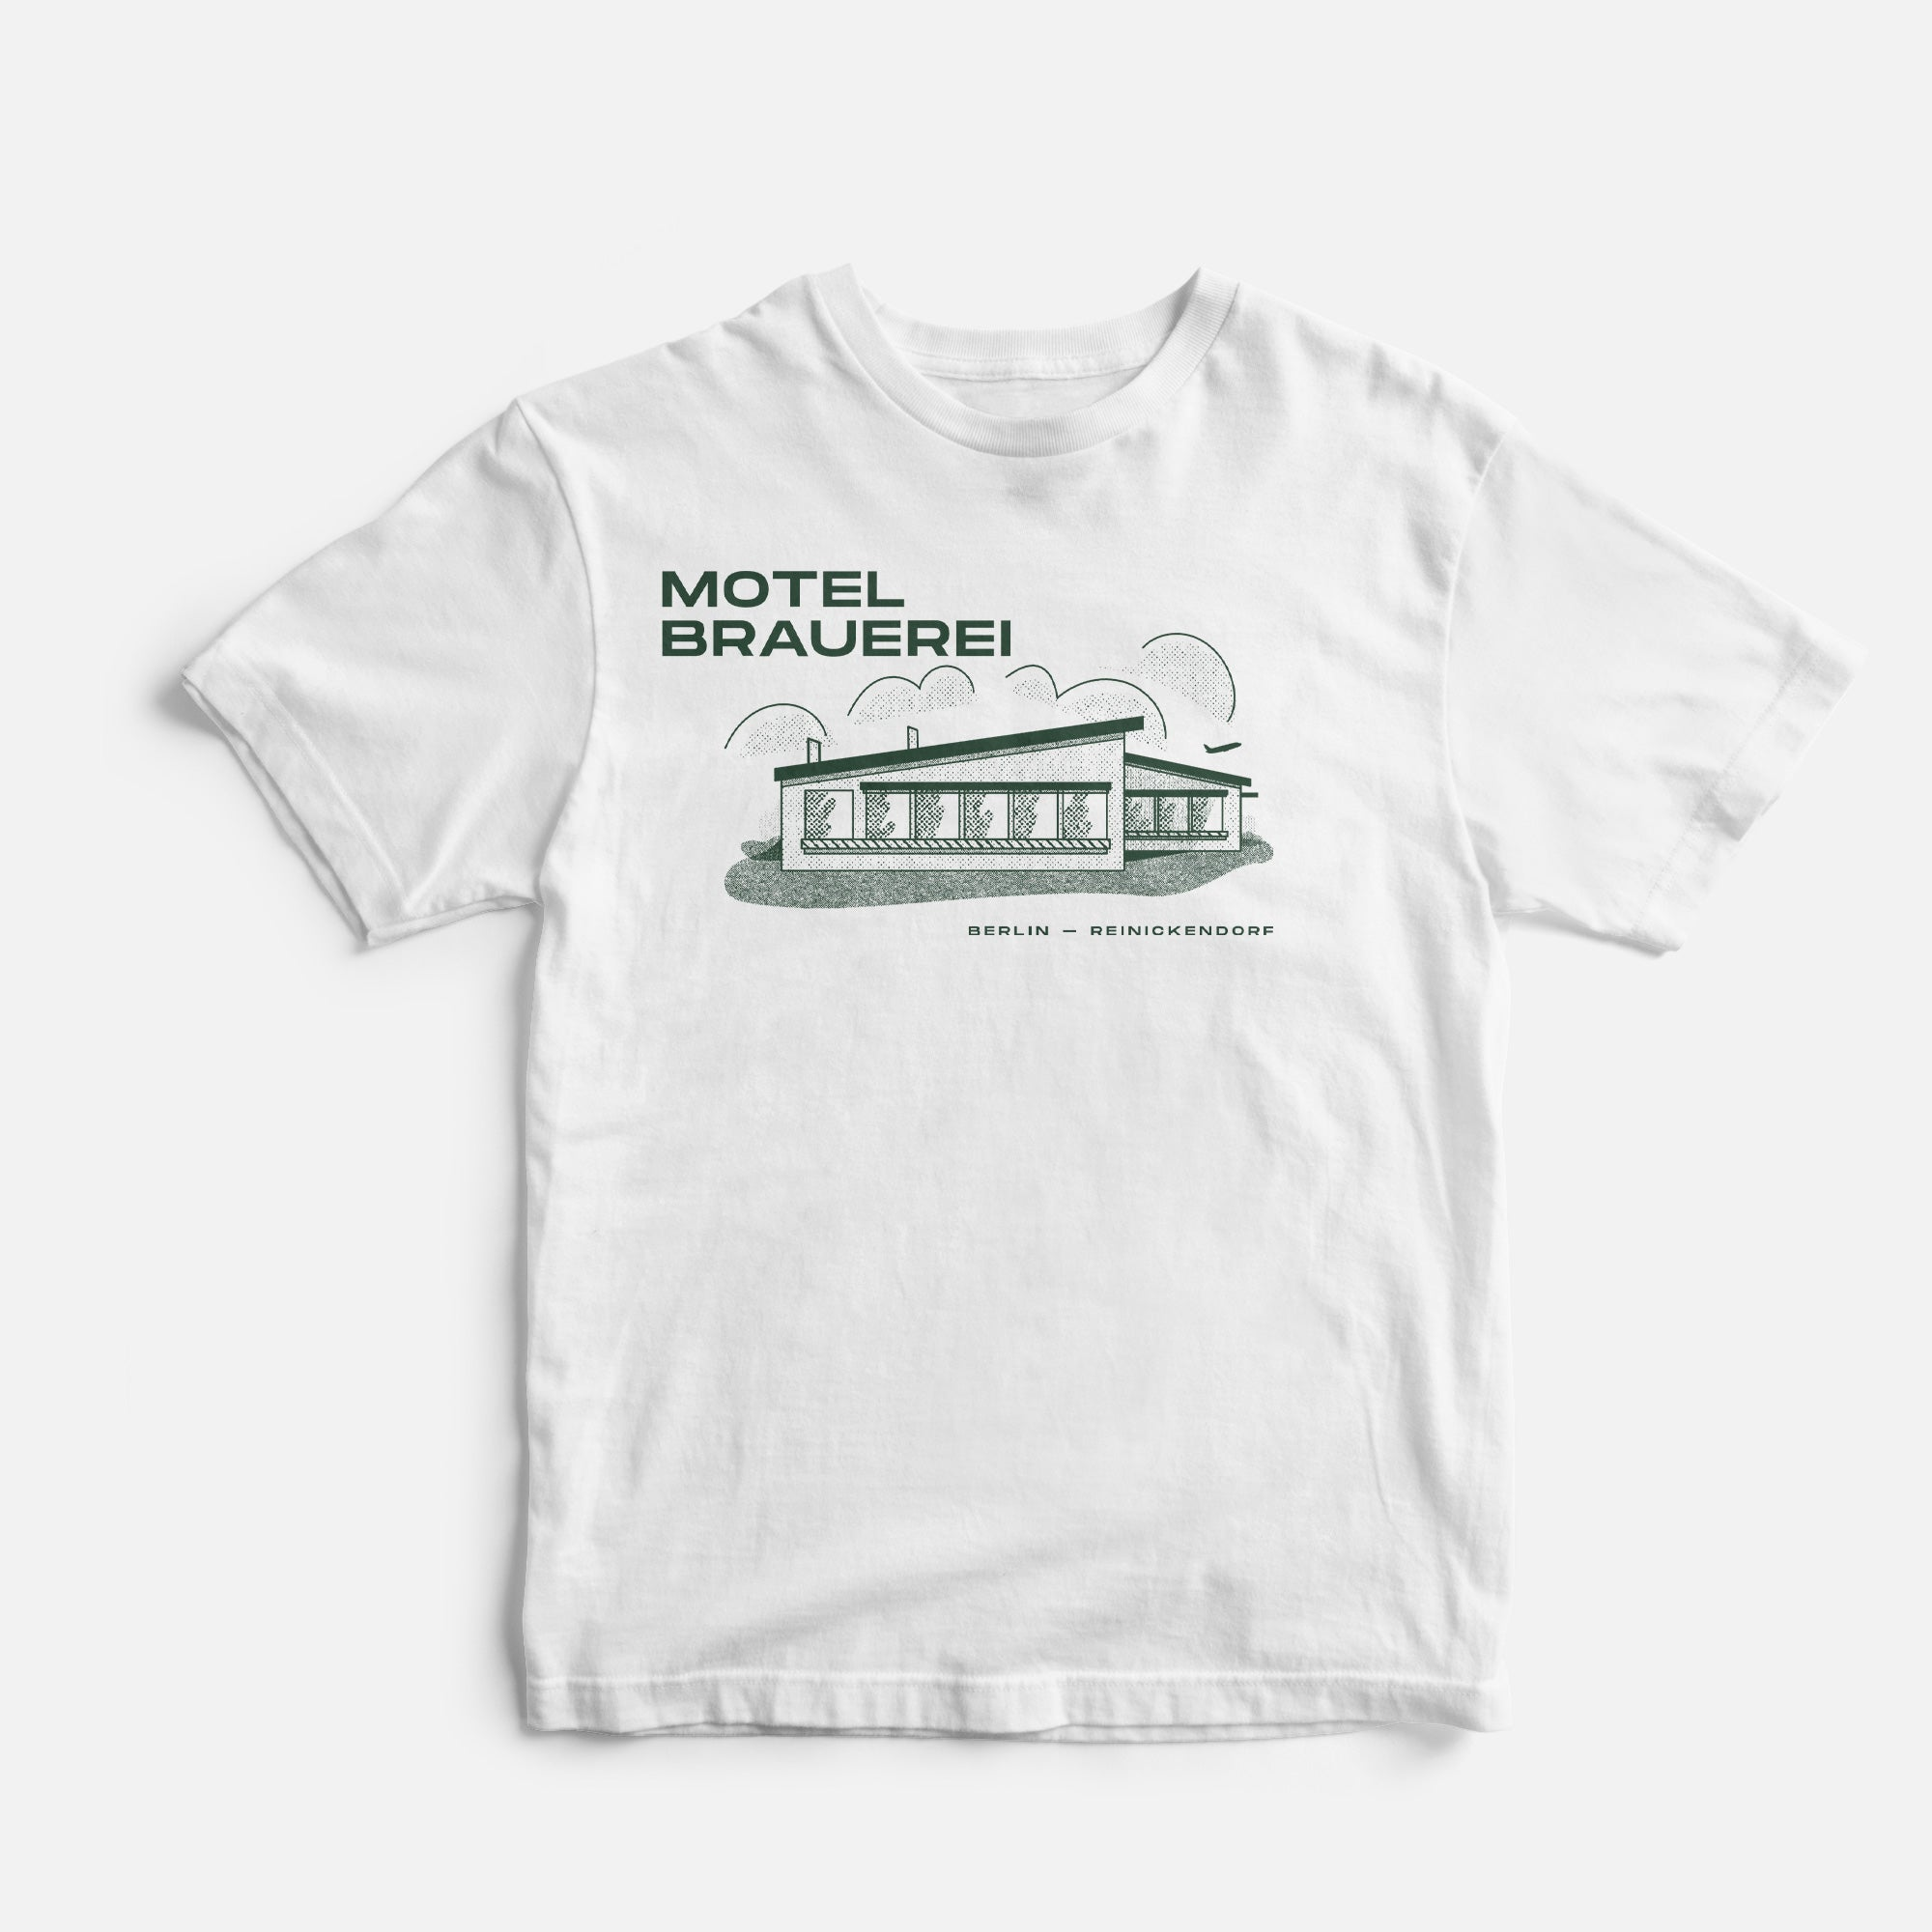 Motel T-Shirt - Organic Cotton